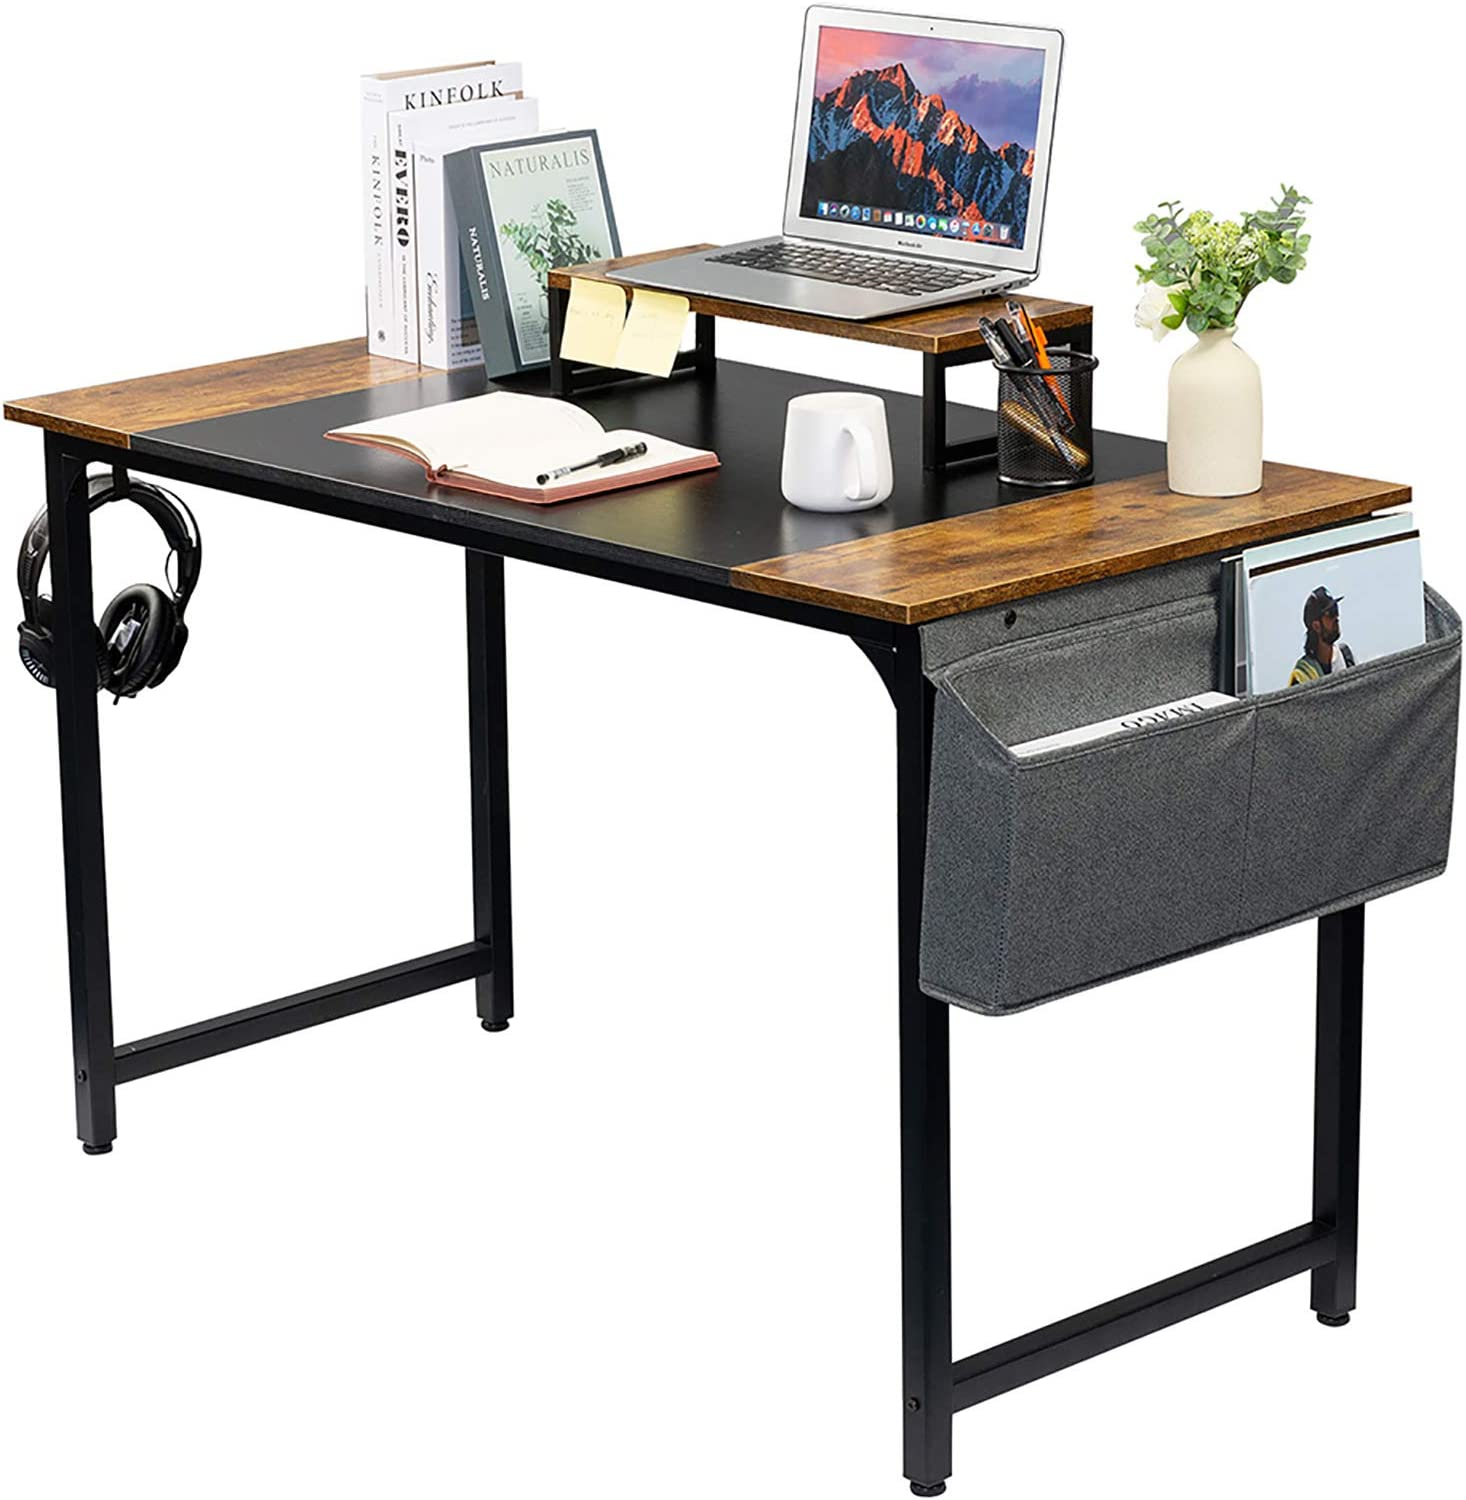 GAJOO Computer Desk Work Home Office Desk Writing Study Desk 47inch,Modern Simple Student School Study Desk with Monitor Stand Storage Bag and Plug-in Row Storage for Home Office Rustic and Black